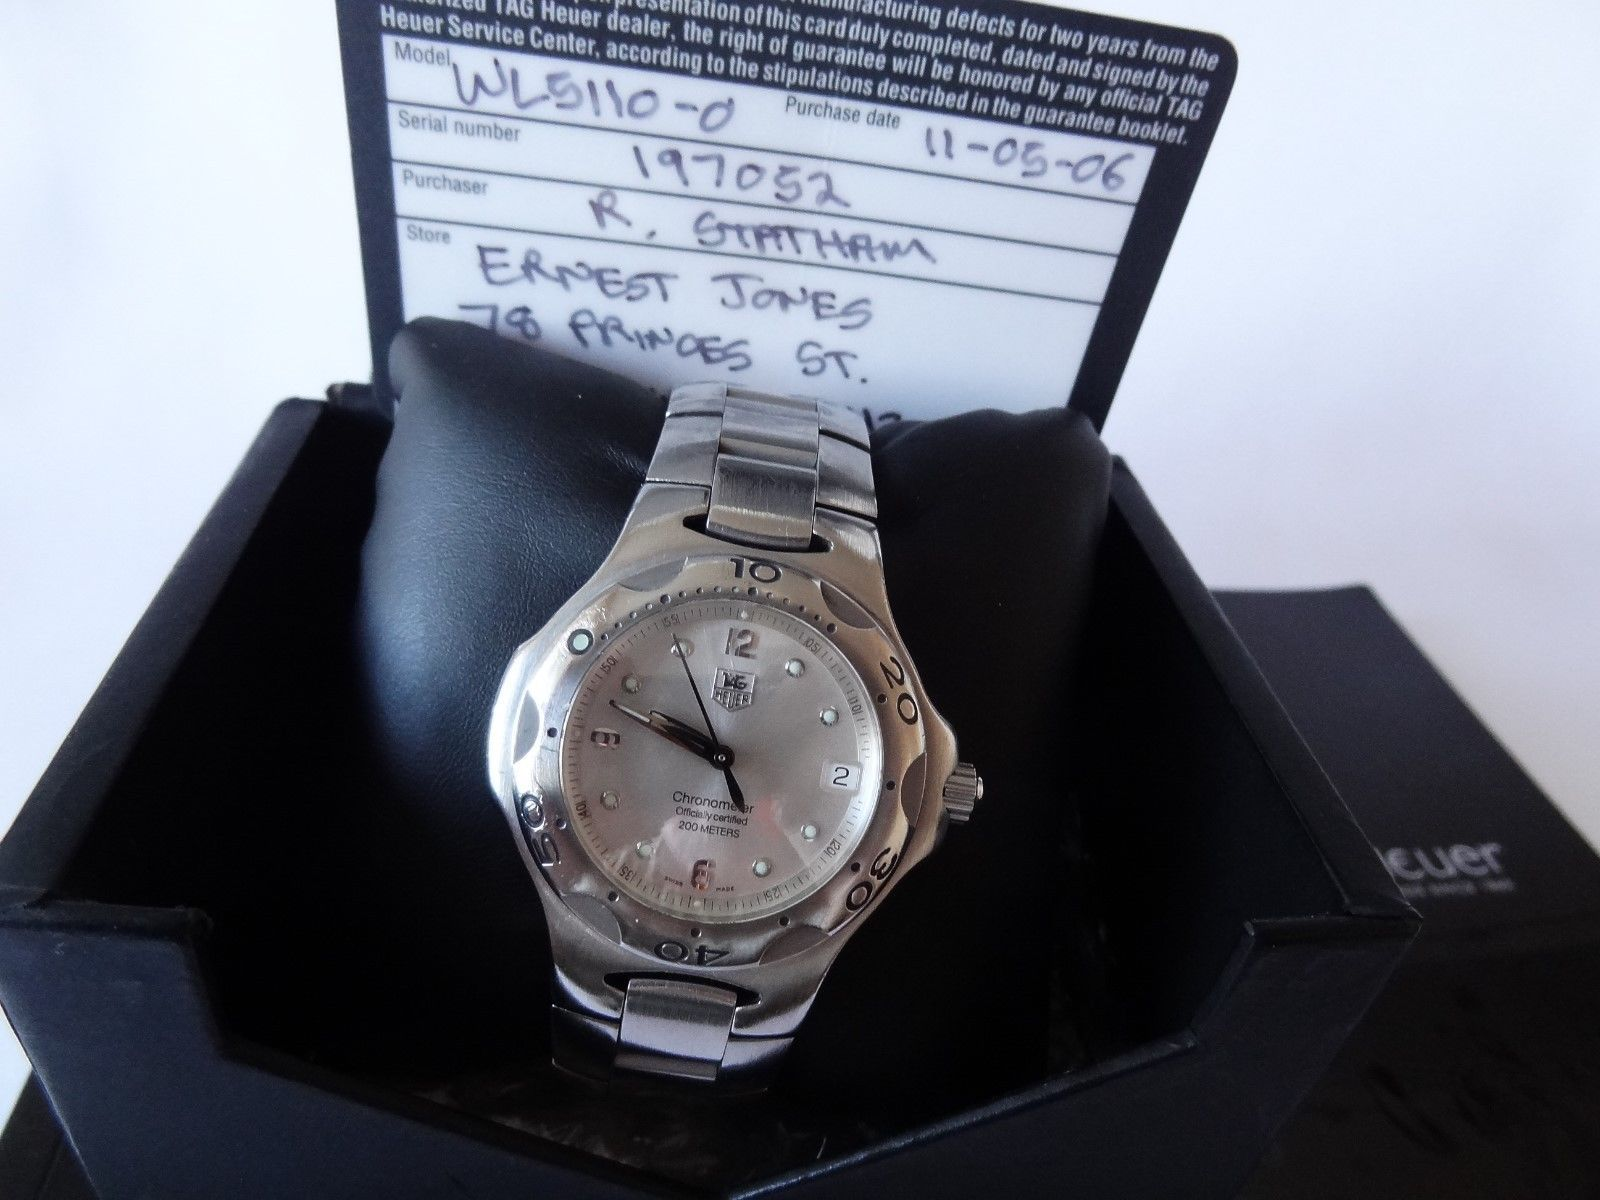 GENTS MENS TAG HEUER AUTOMATIC CHRONO(METER) 300M W/R FINE CONDITION BOX & CERT https://t.co/GM0PpNDYFH https://t.co/2d1BQdZjXC